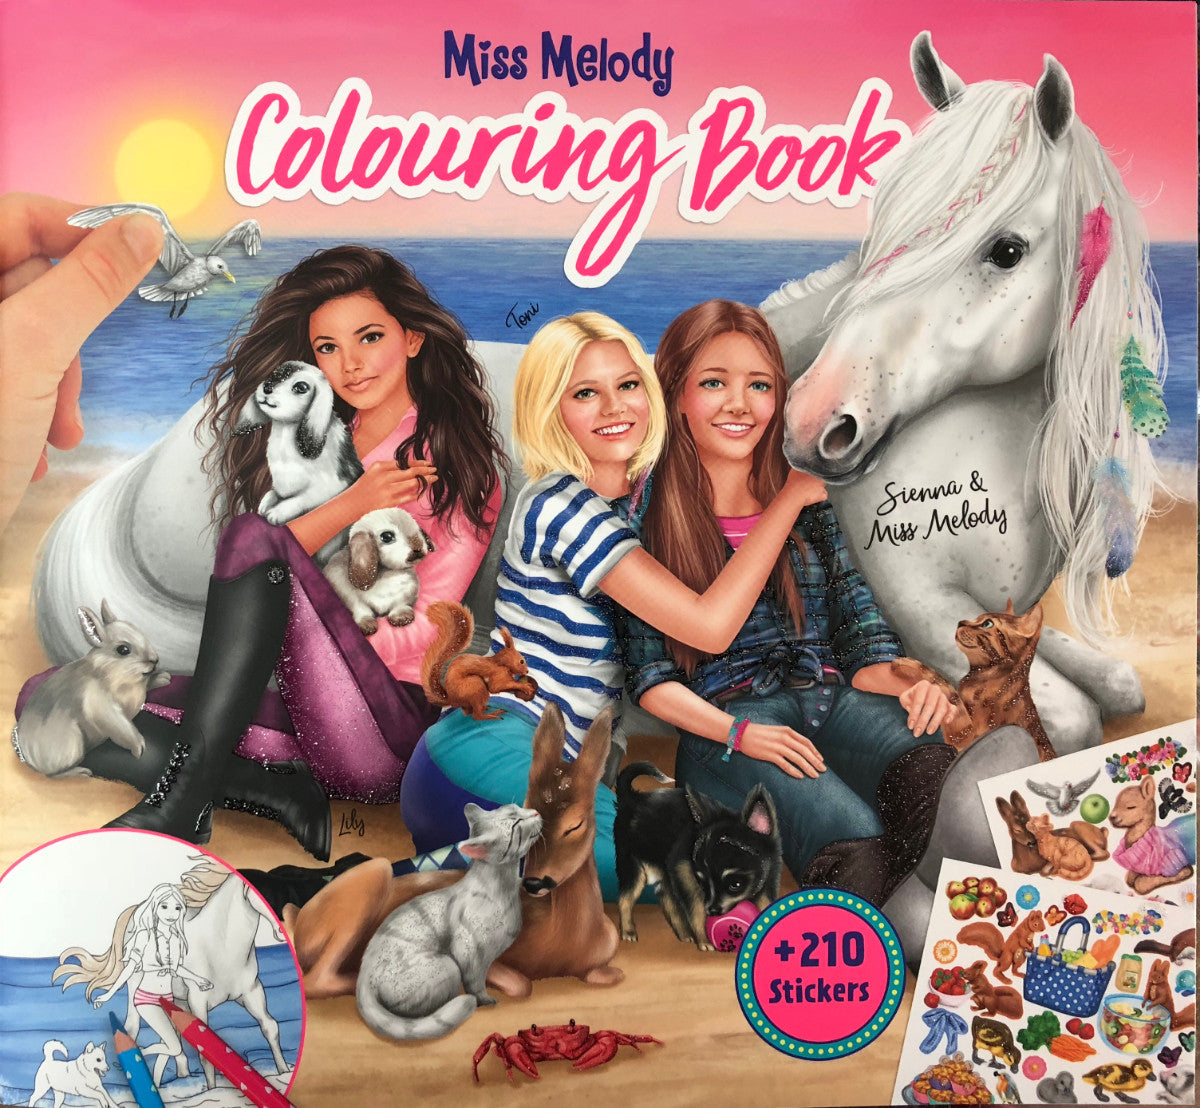 Miss Melody Colouring Book with Animals (Depesche) [10409]